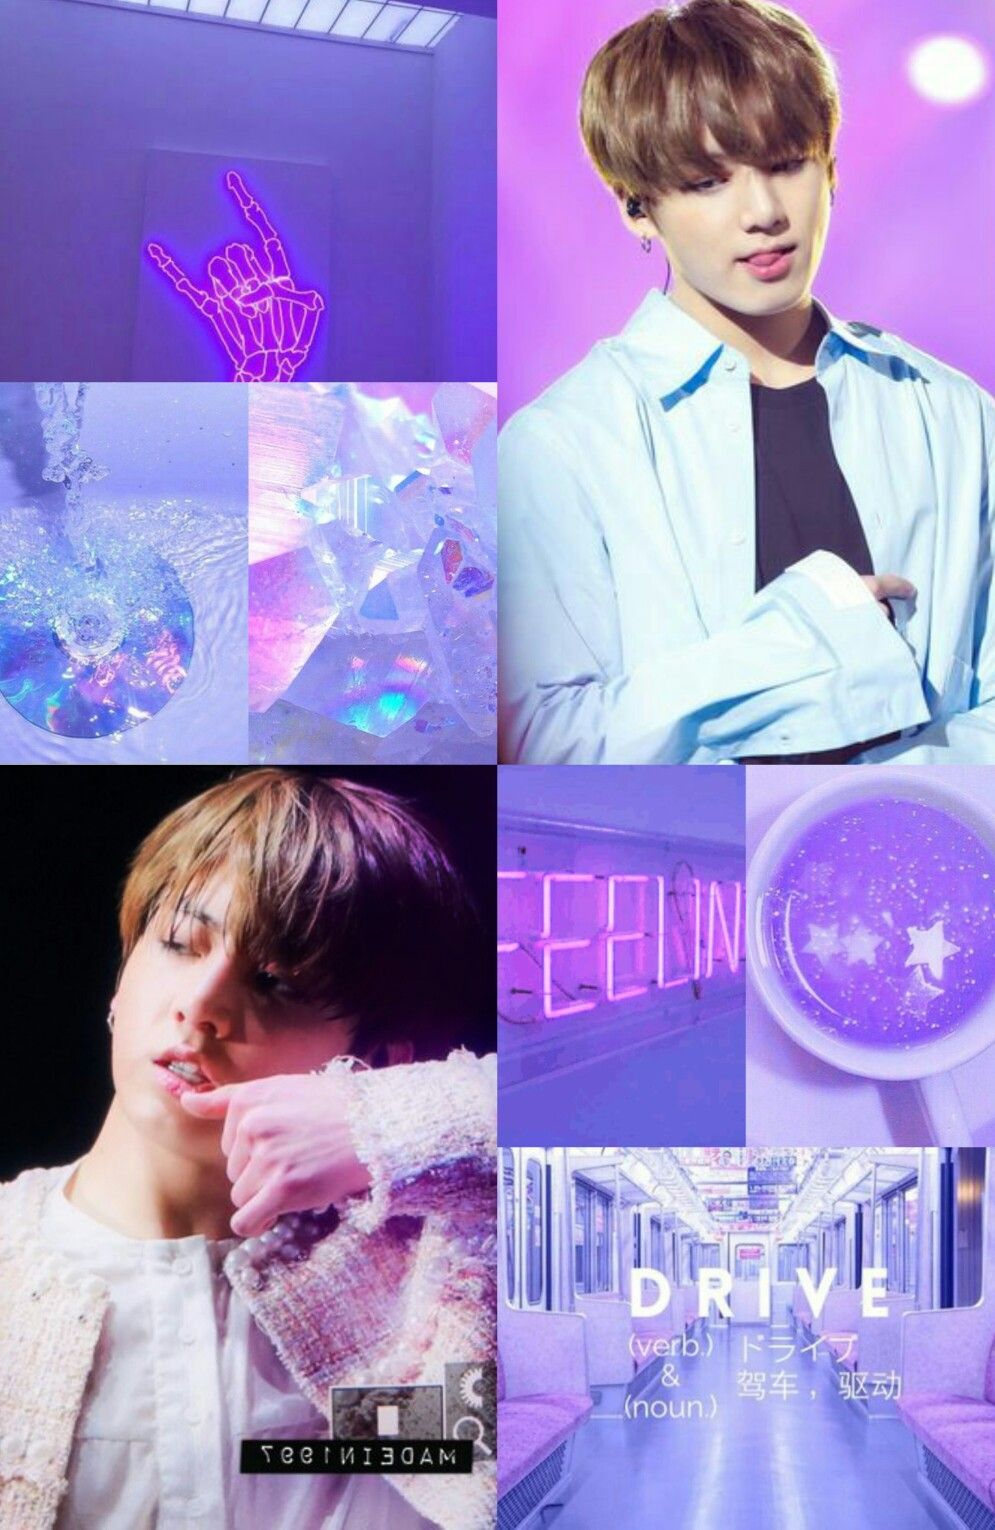 Bts Jungkook Aesthetic Purple Jungkook Aesthetic Purple Wallpaper Bts Wallpaper